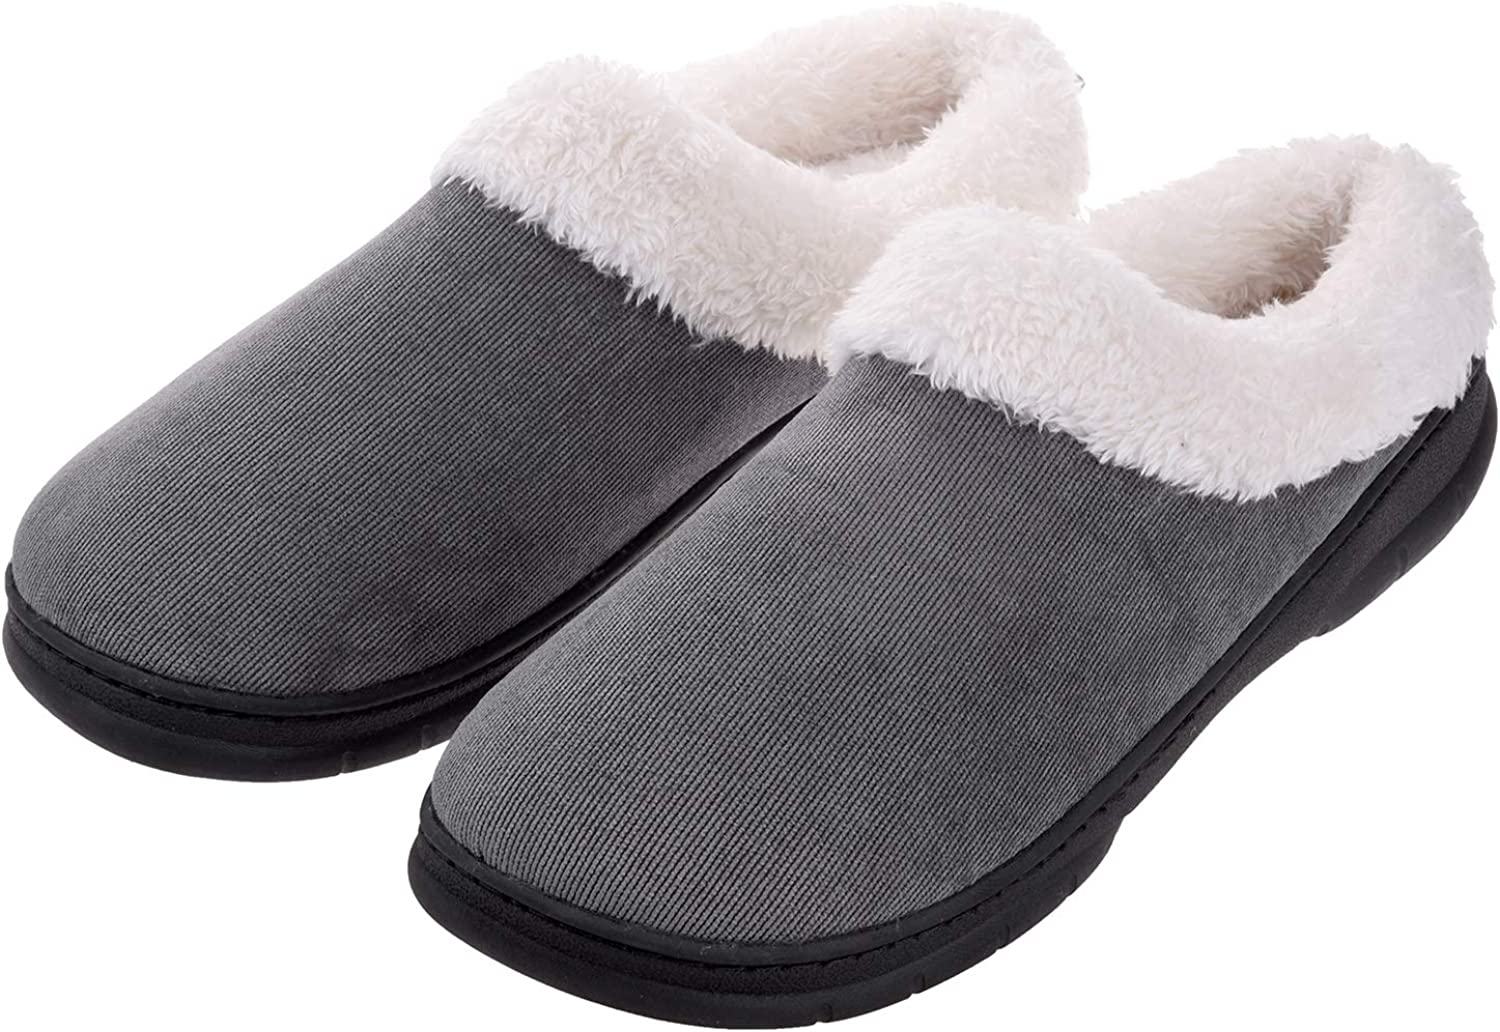 Men's Slippers House Shoes Fuzzy Fluffy Clog Slip On Memory Foam Indoor Outdoor